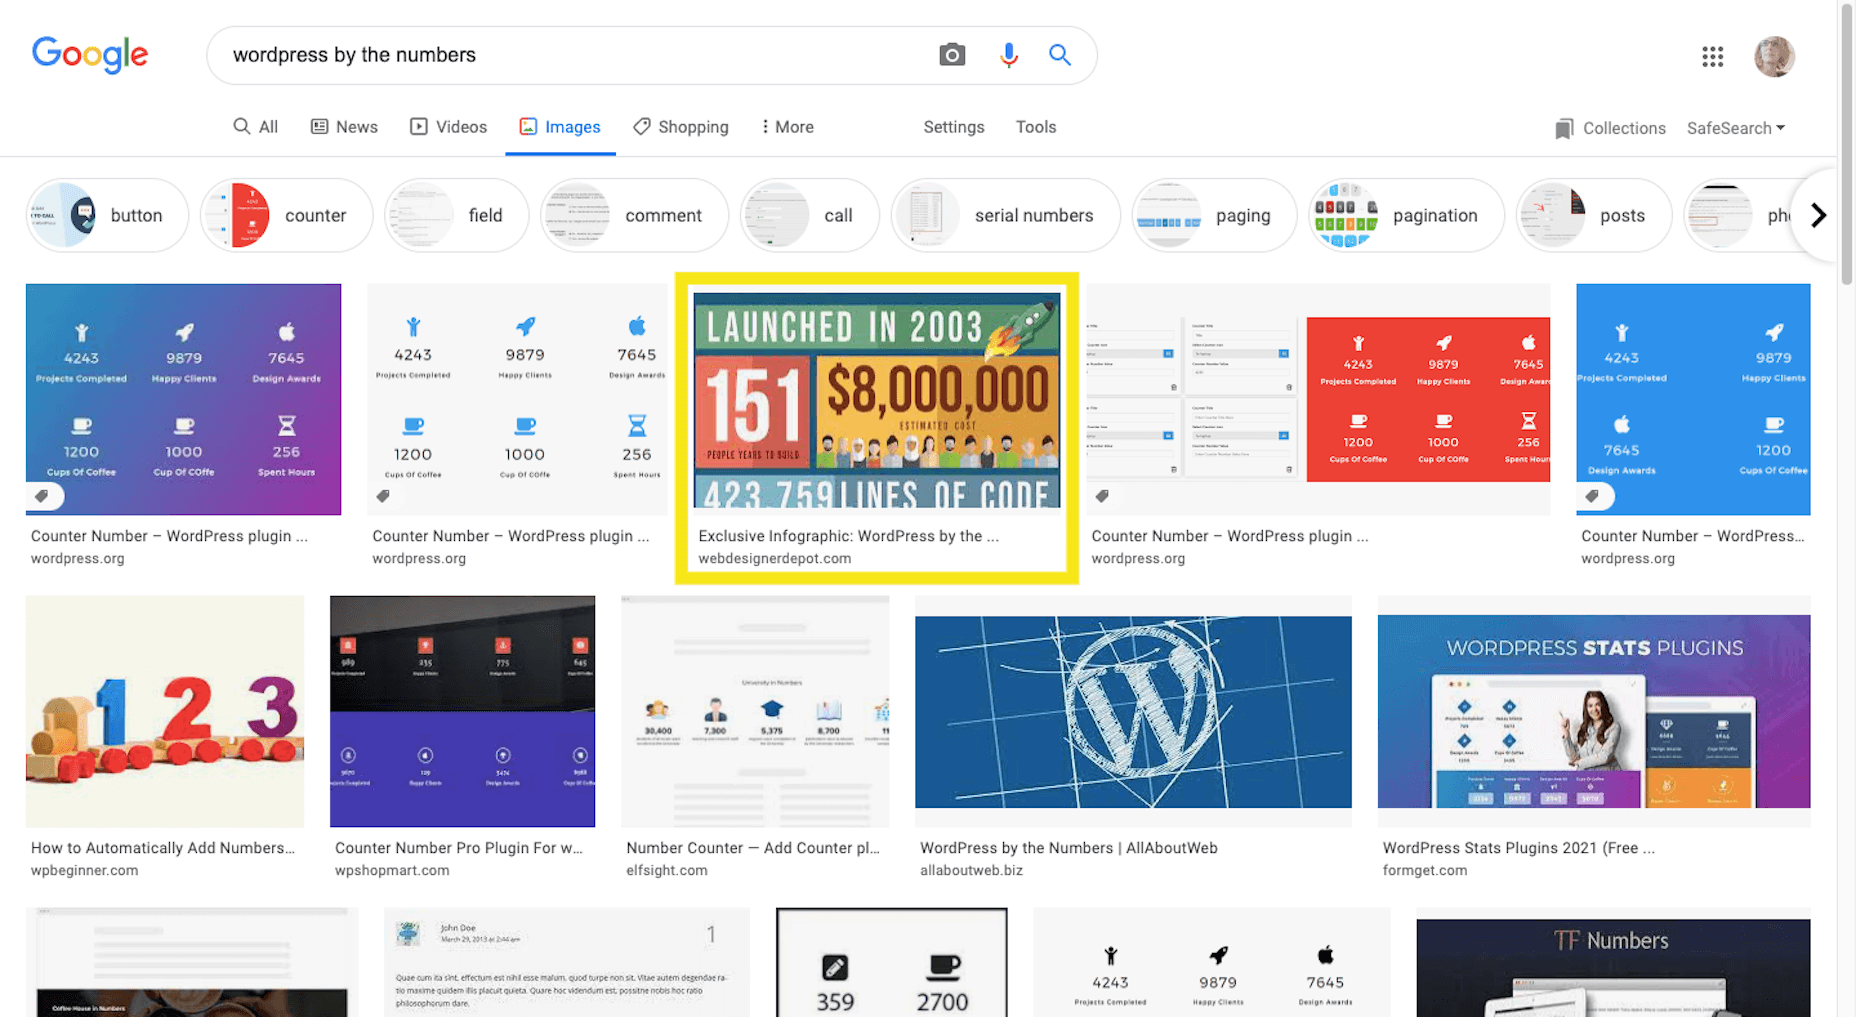 """A Google Images search for """"WordPress by the numbers"""""""